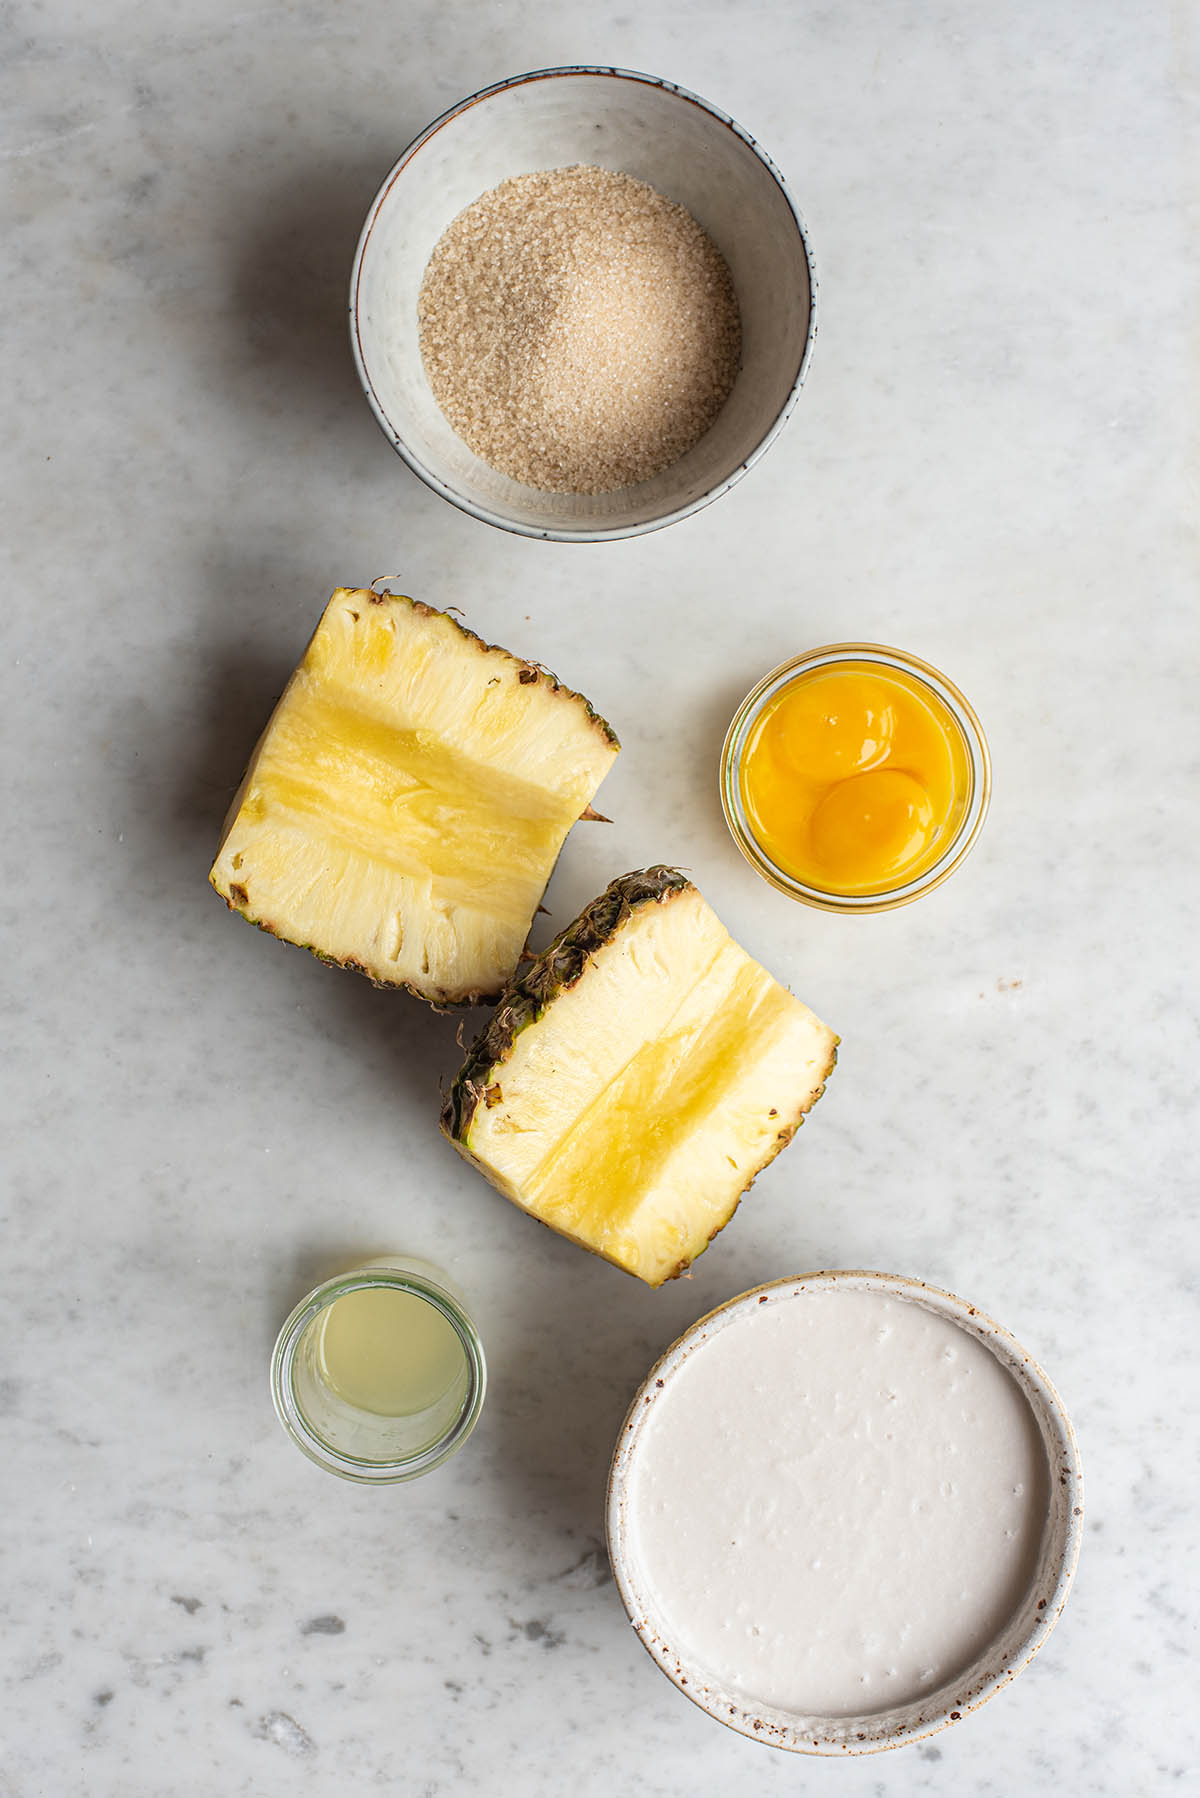 Ingredients to make pineapple ice cream.